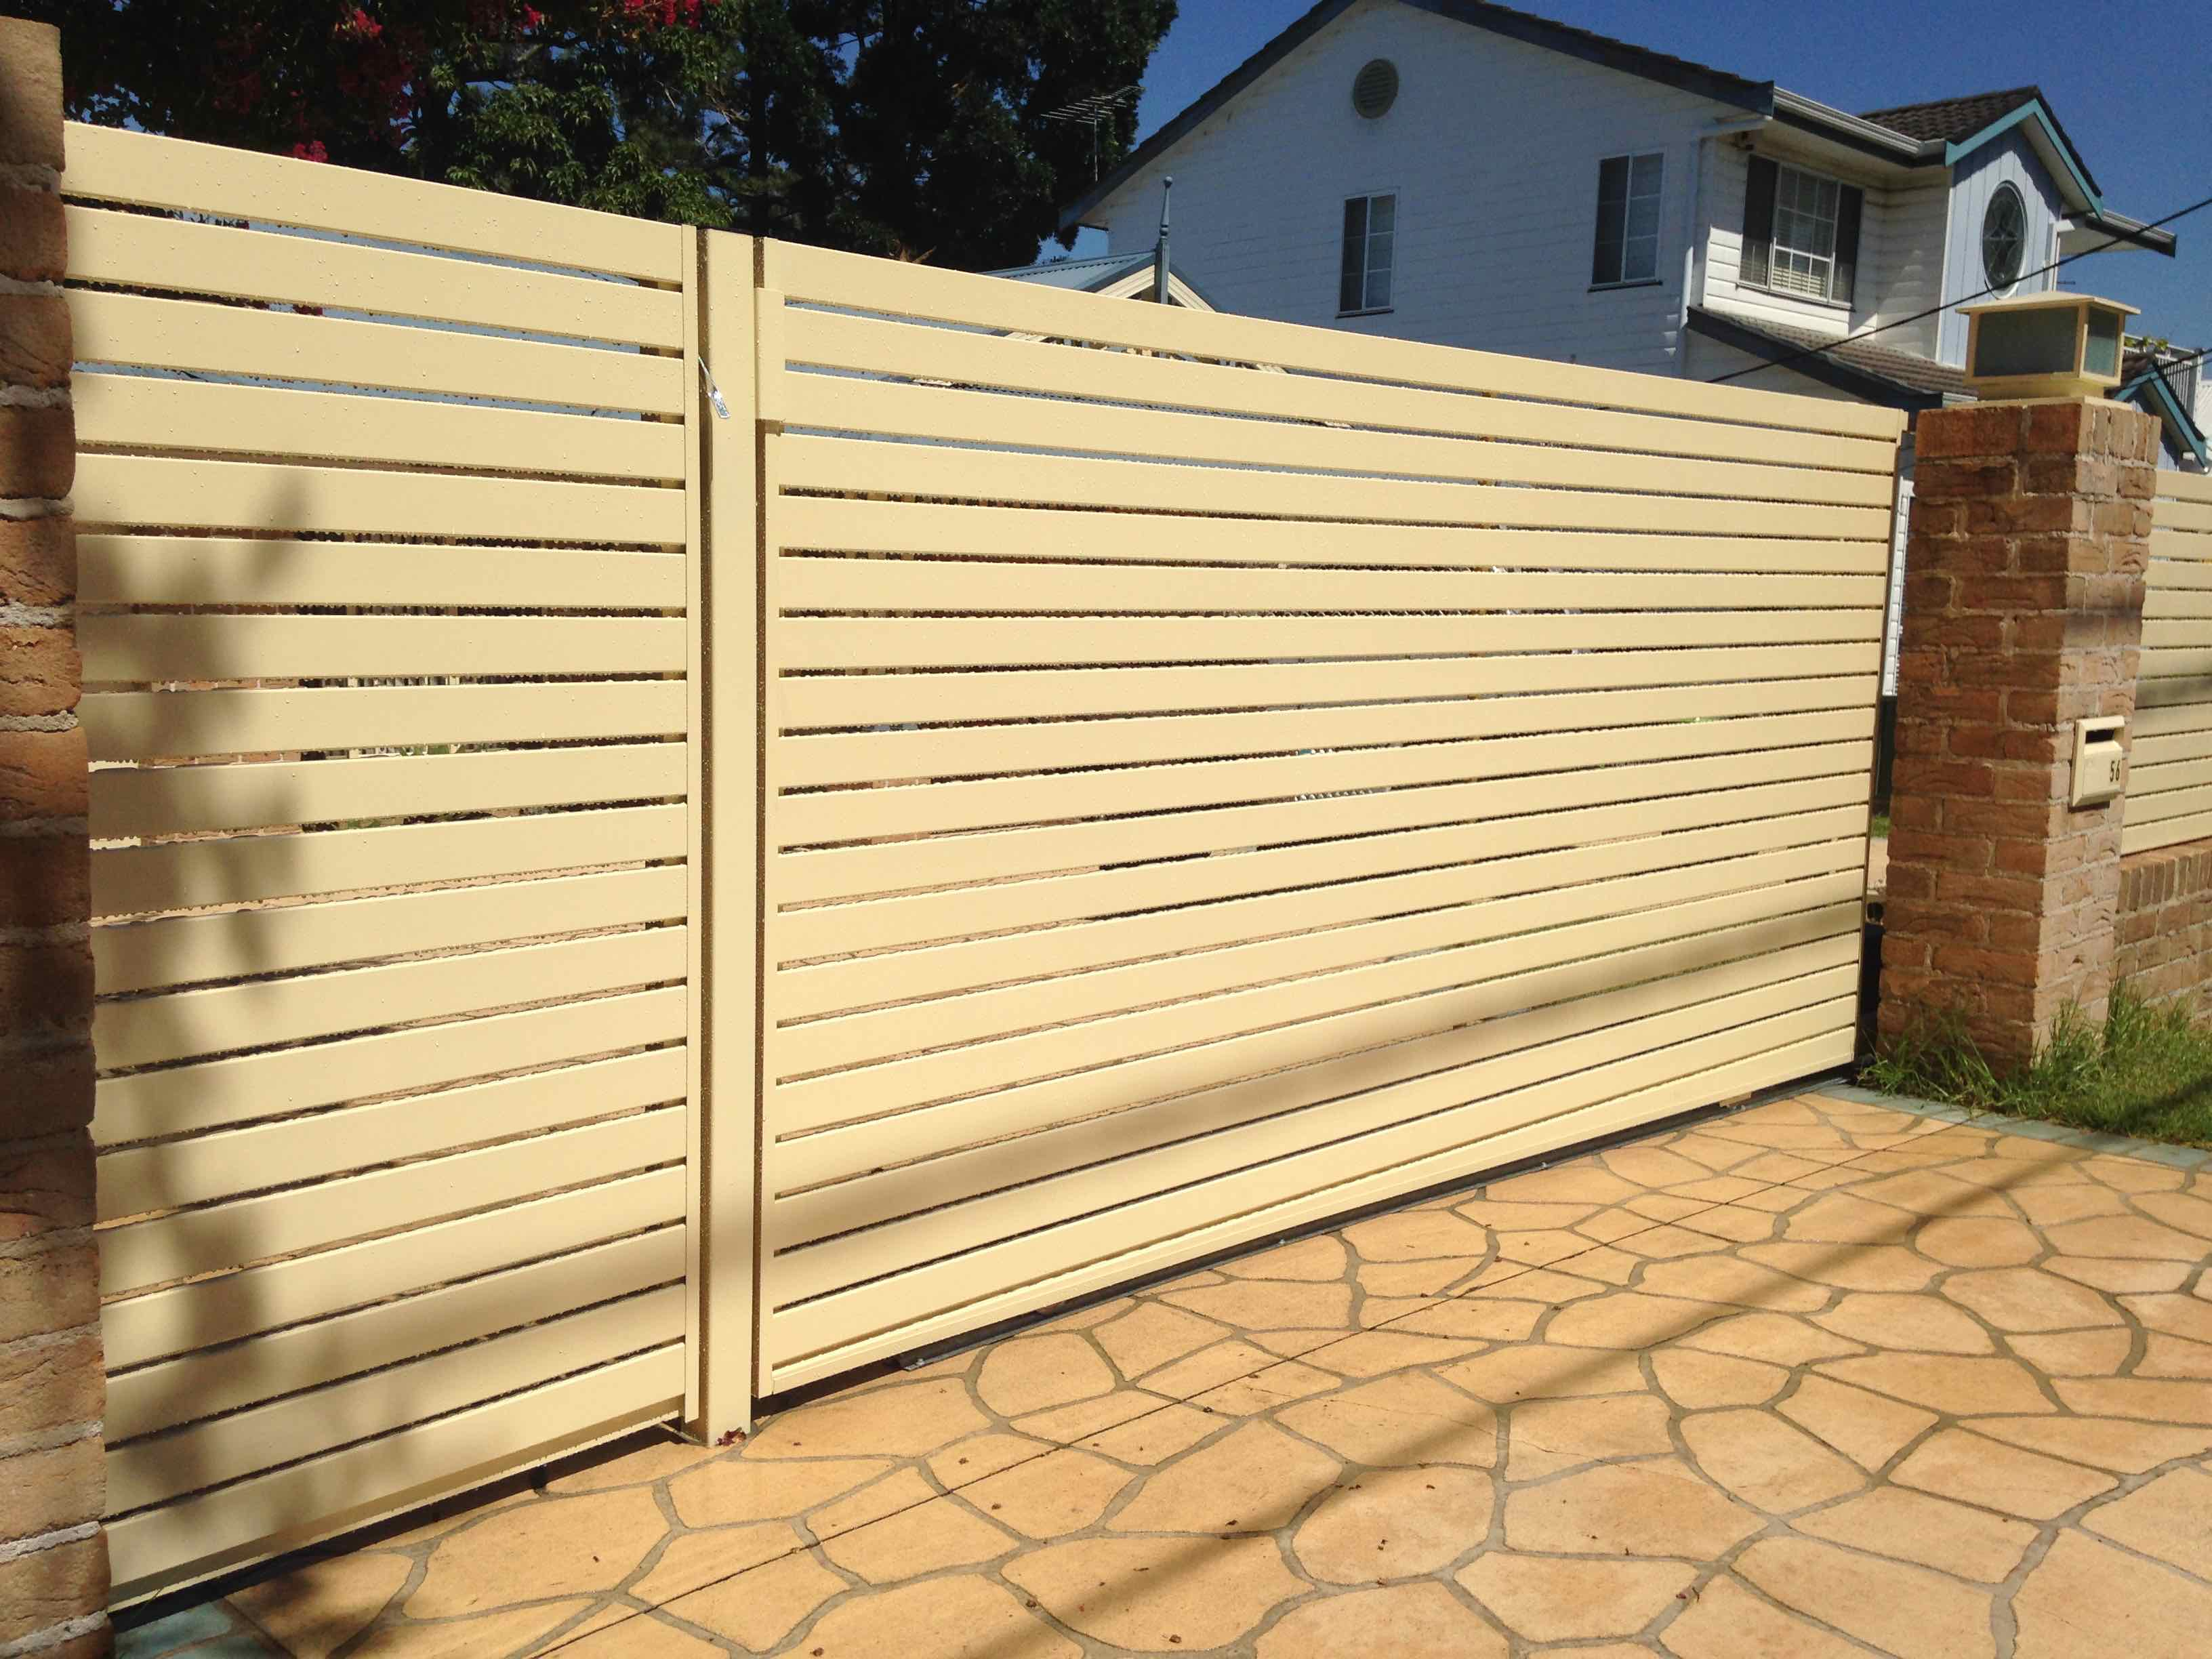 33 Brilliant Home Fence Gate Design Ideas to Protect Your Home in ...